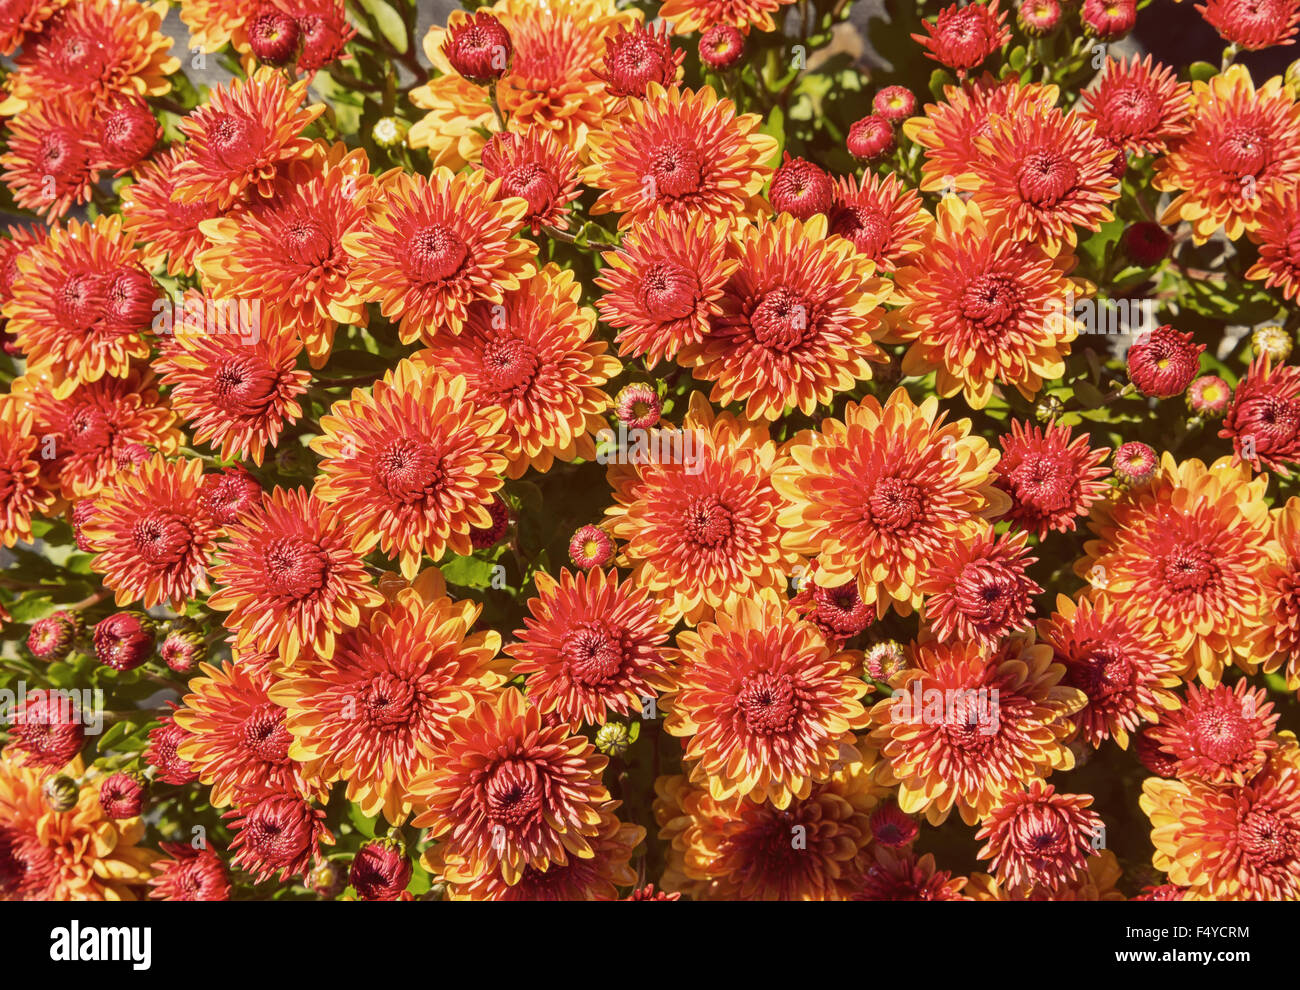 Autumn Mums or Chrysanthemums for flower background - Stock Image